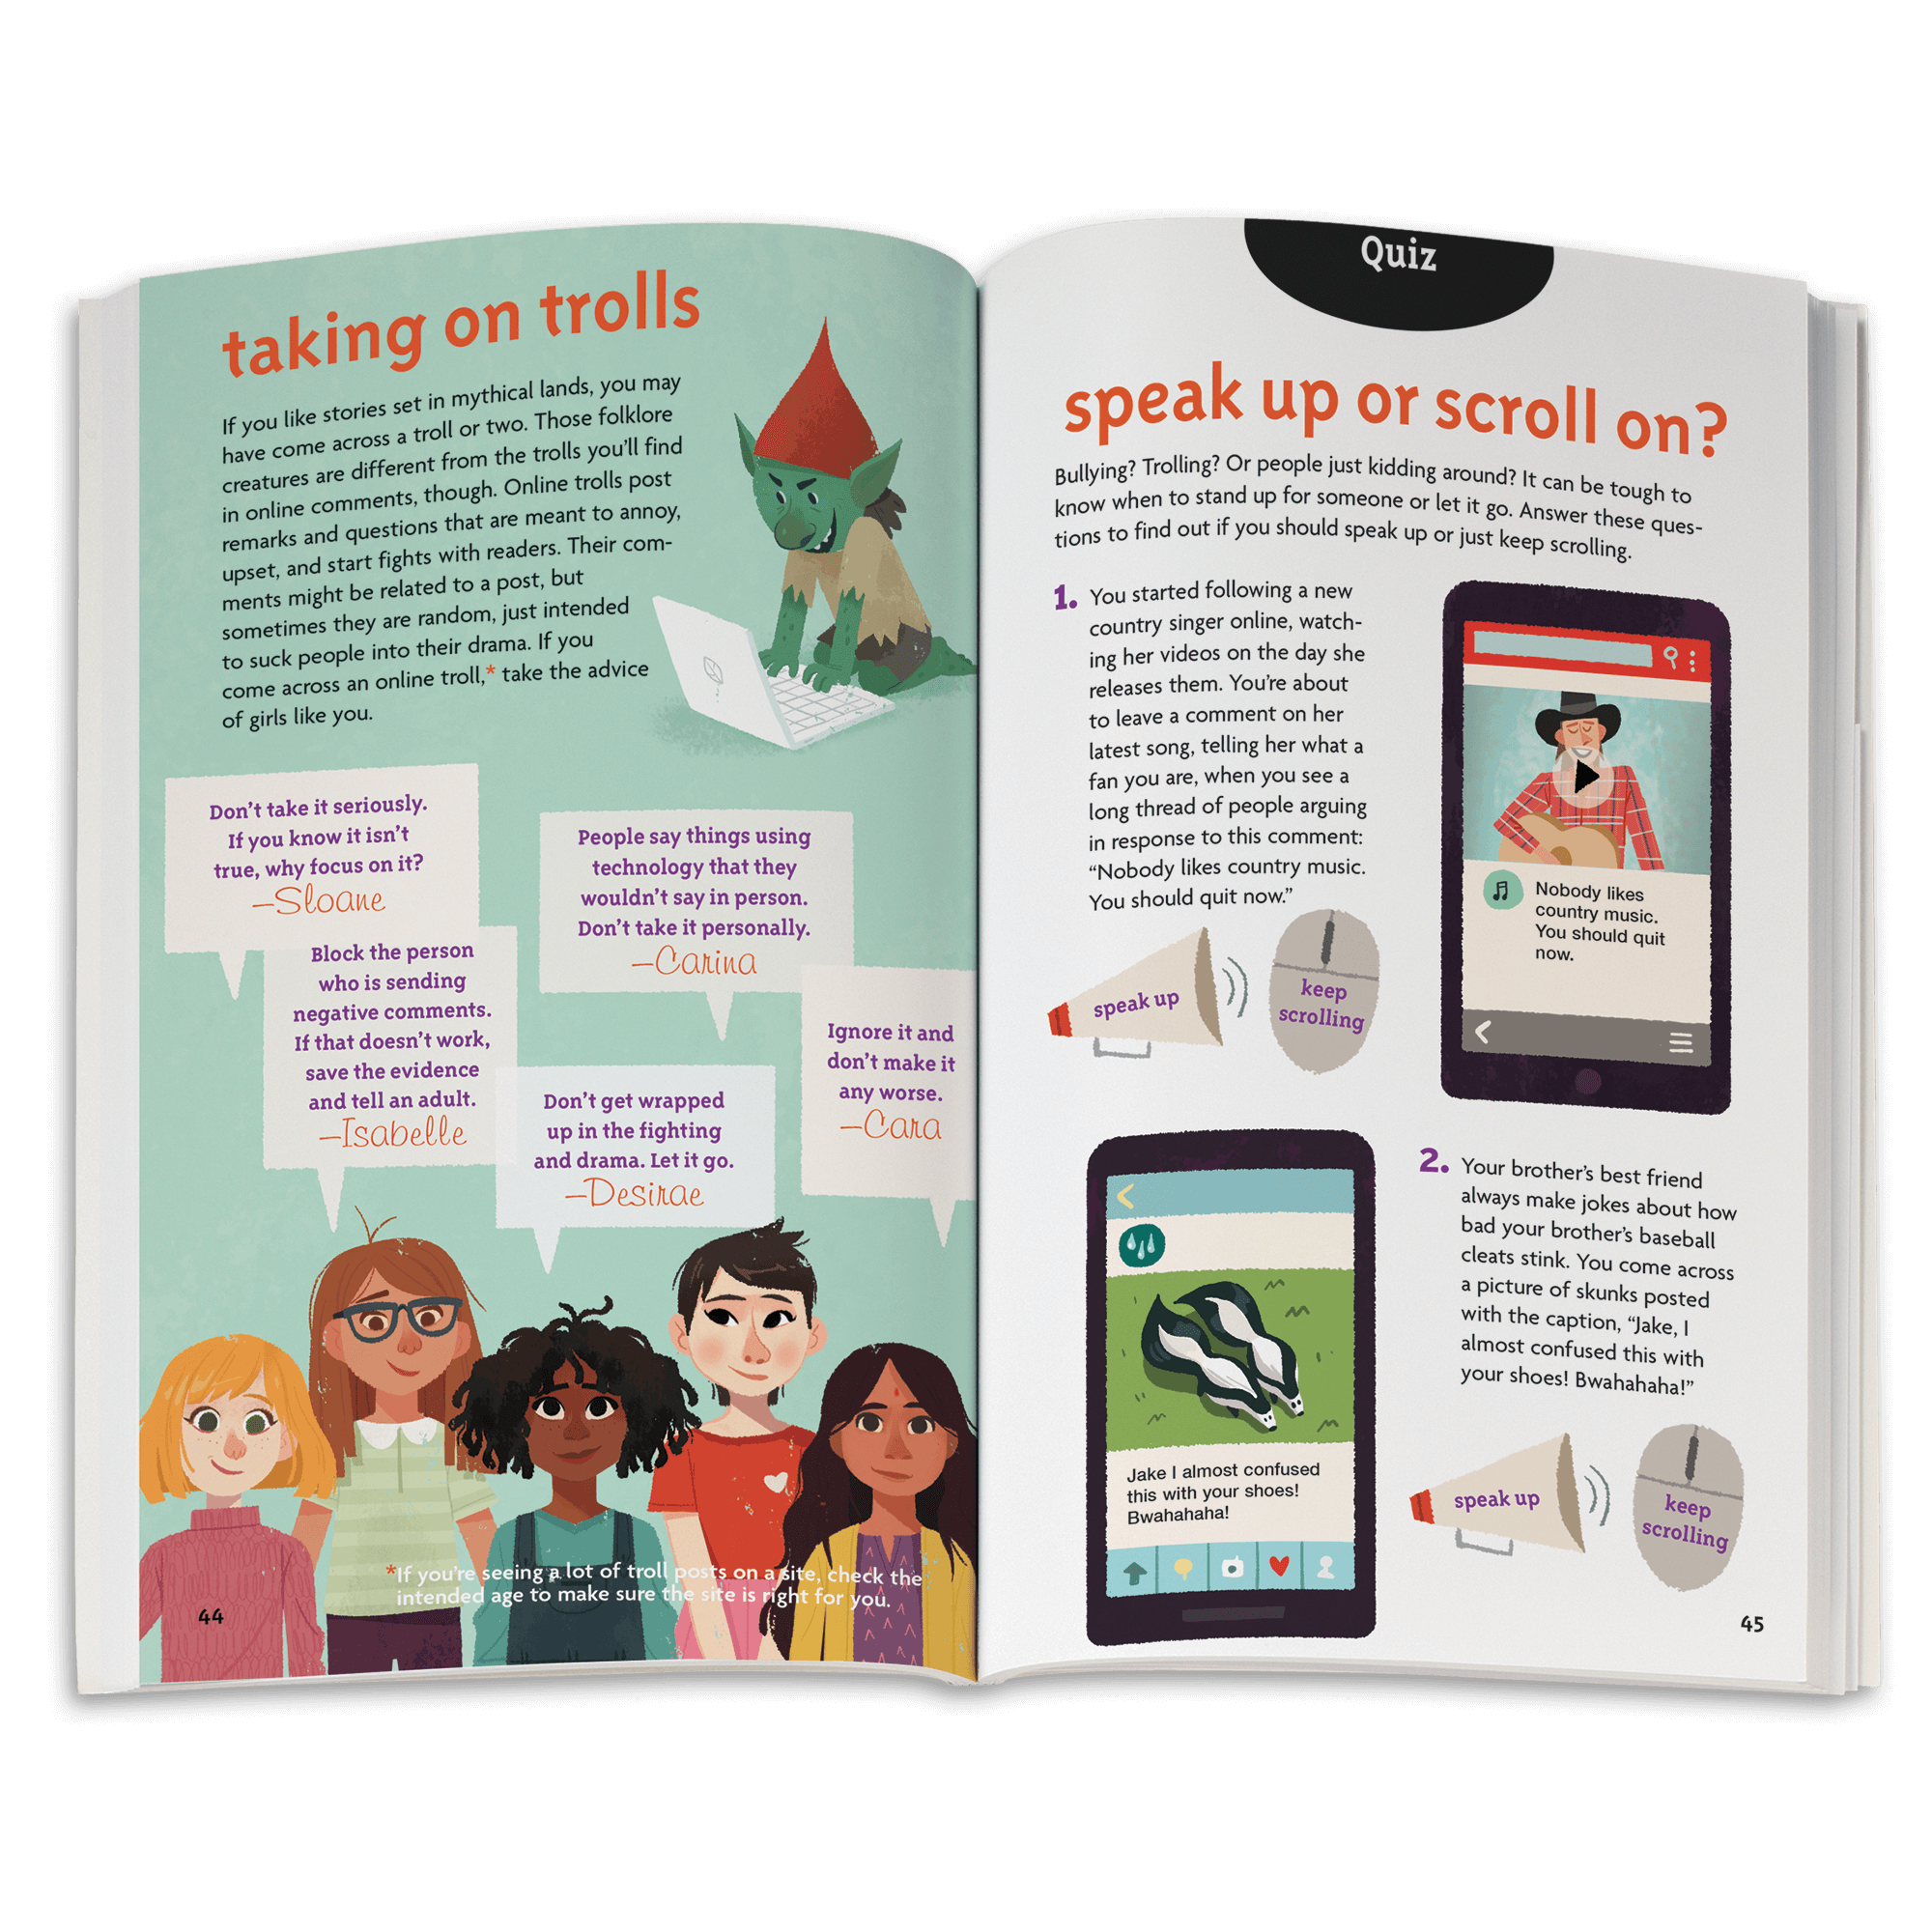 A Smart Girl's Guide: Digital World, How to Connect, Share